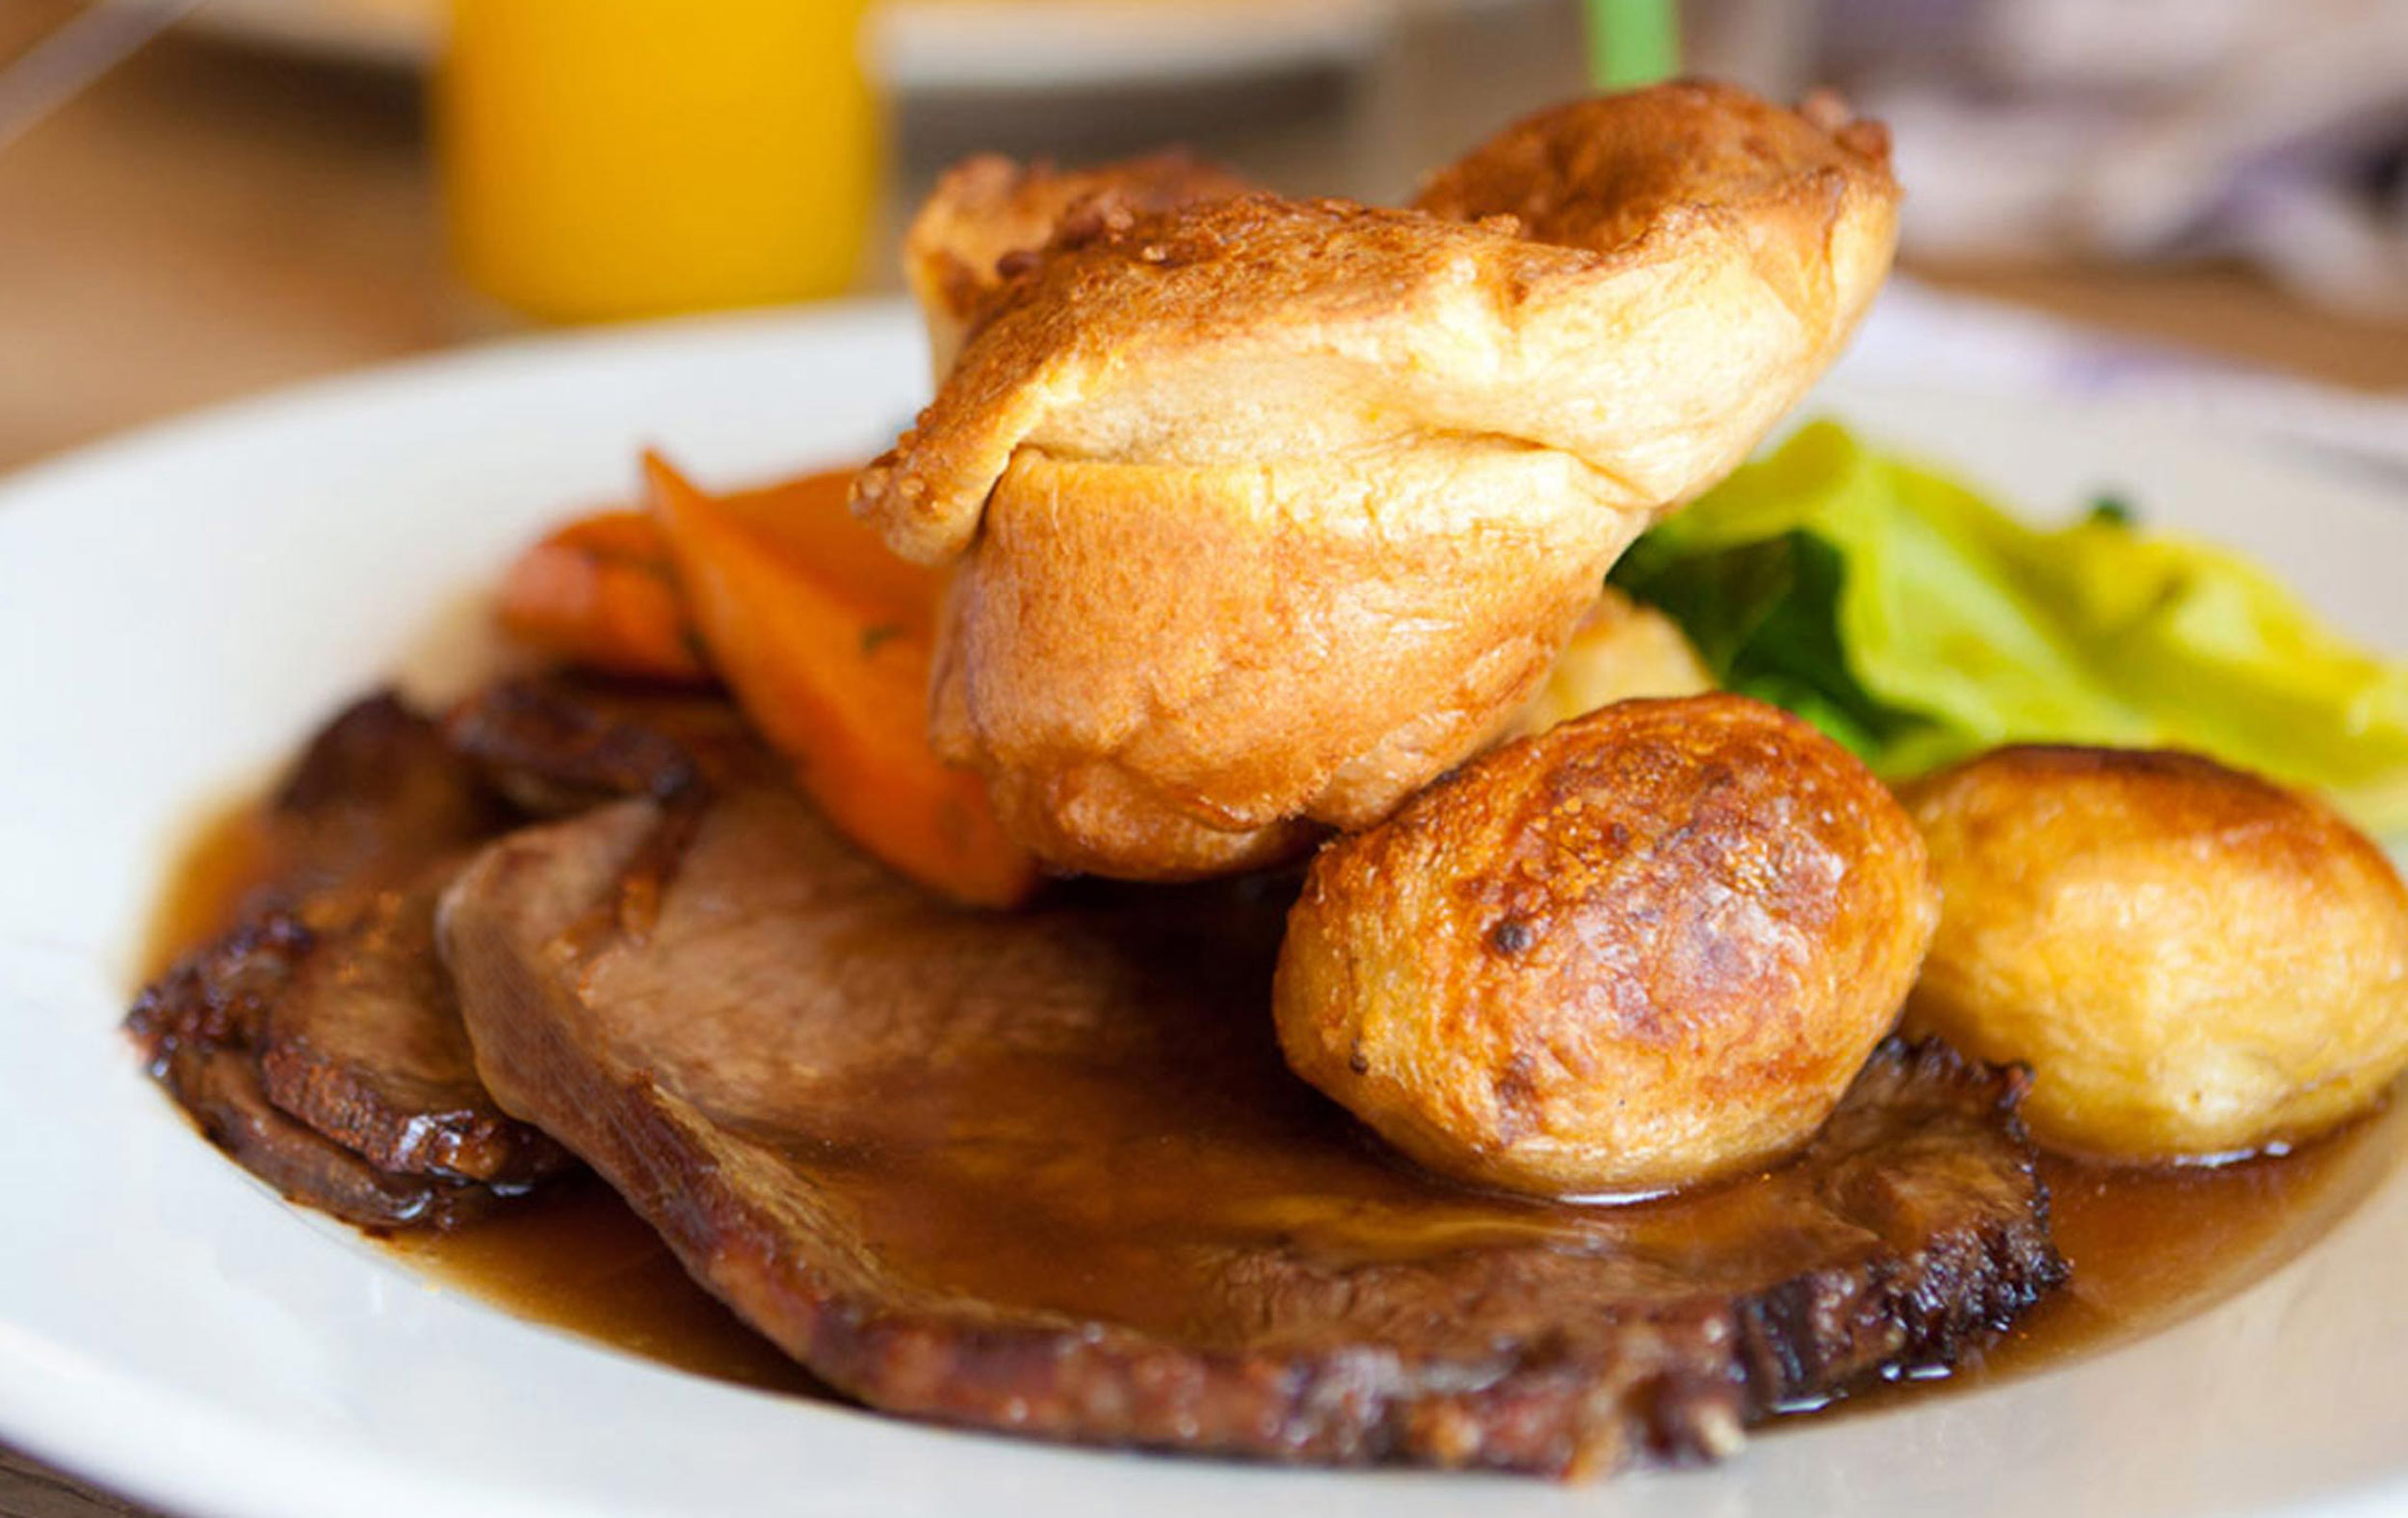 Mouthwatering Cavery Untill 4pm